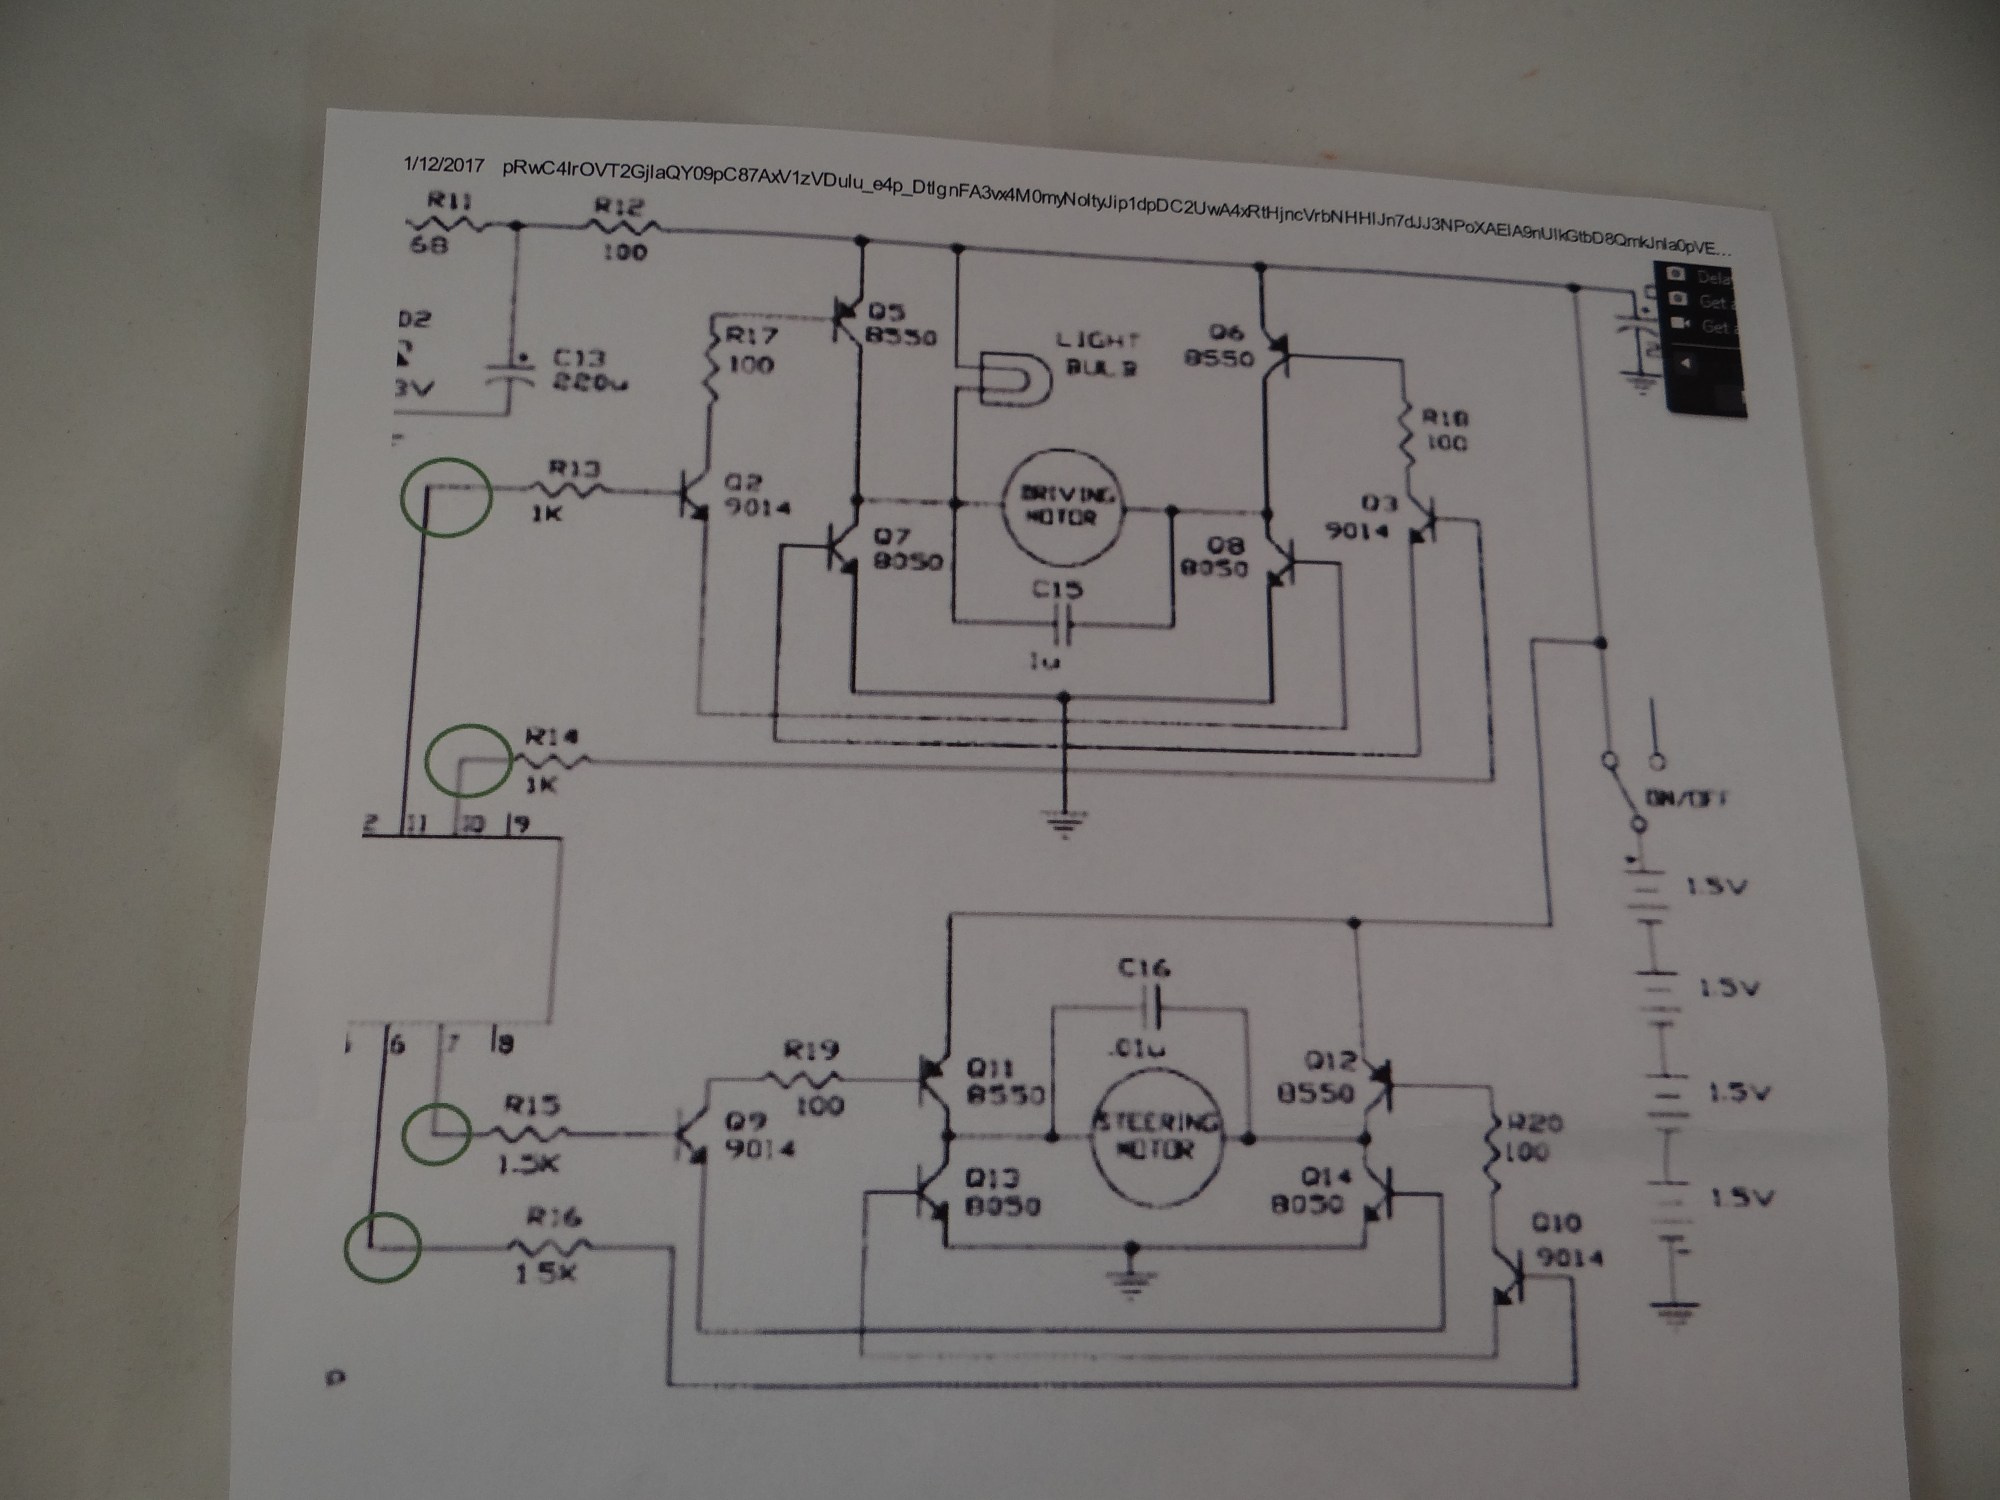 hight resolution of  and r16 from the motor controller board to disconnect the on board remote controller integrated circuit in the next schematic i will show how i took